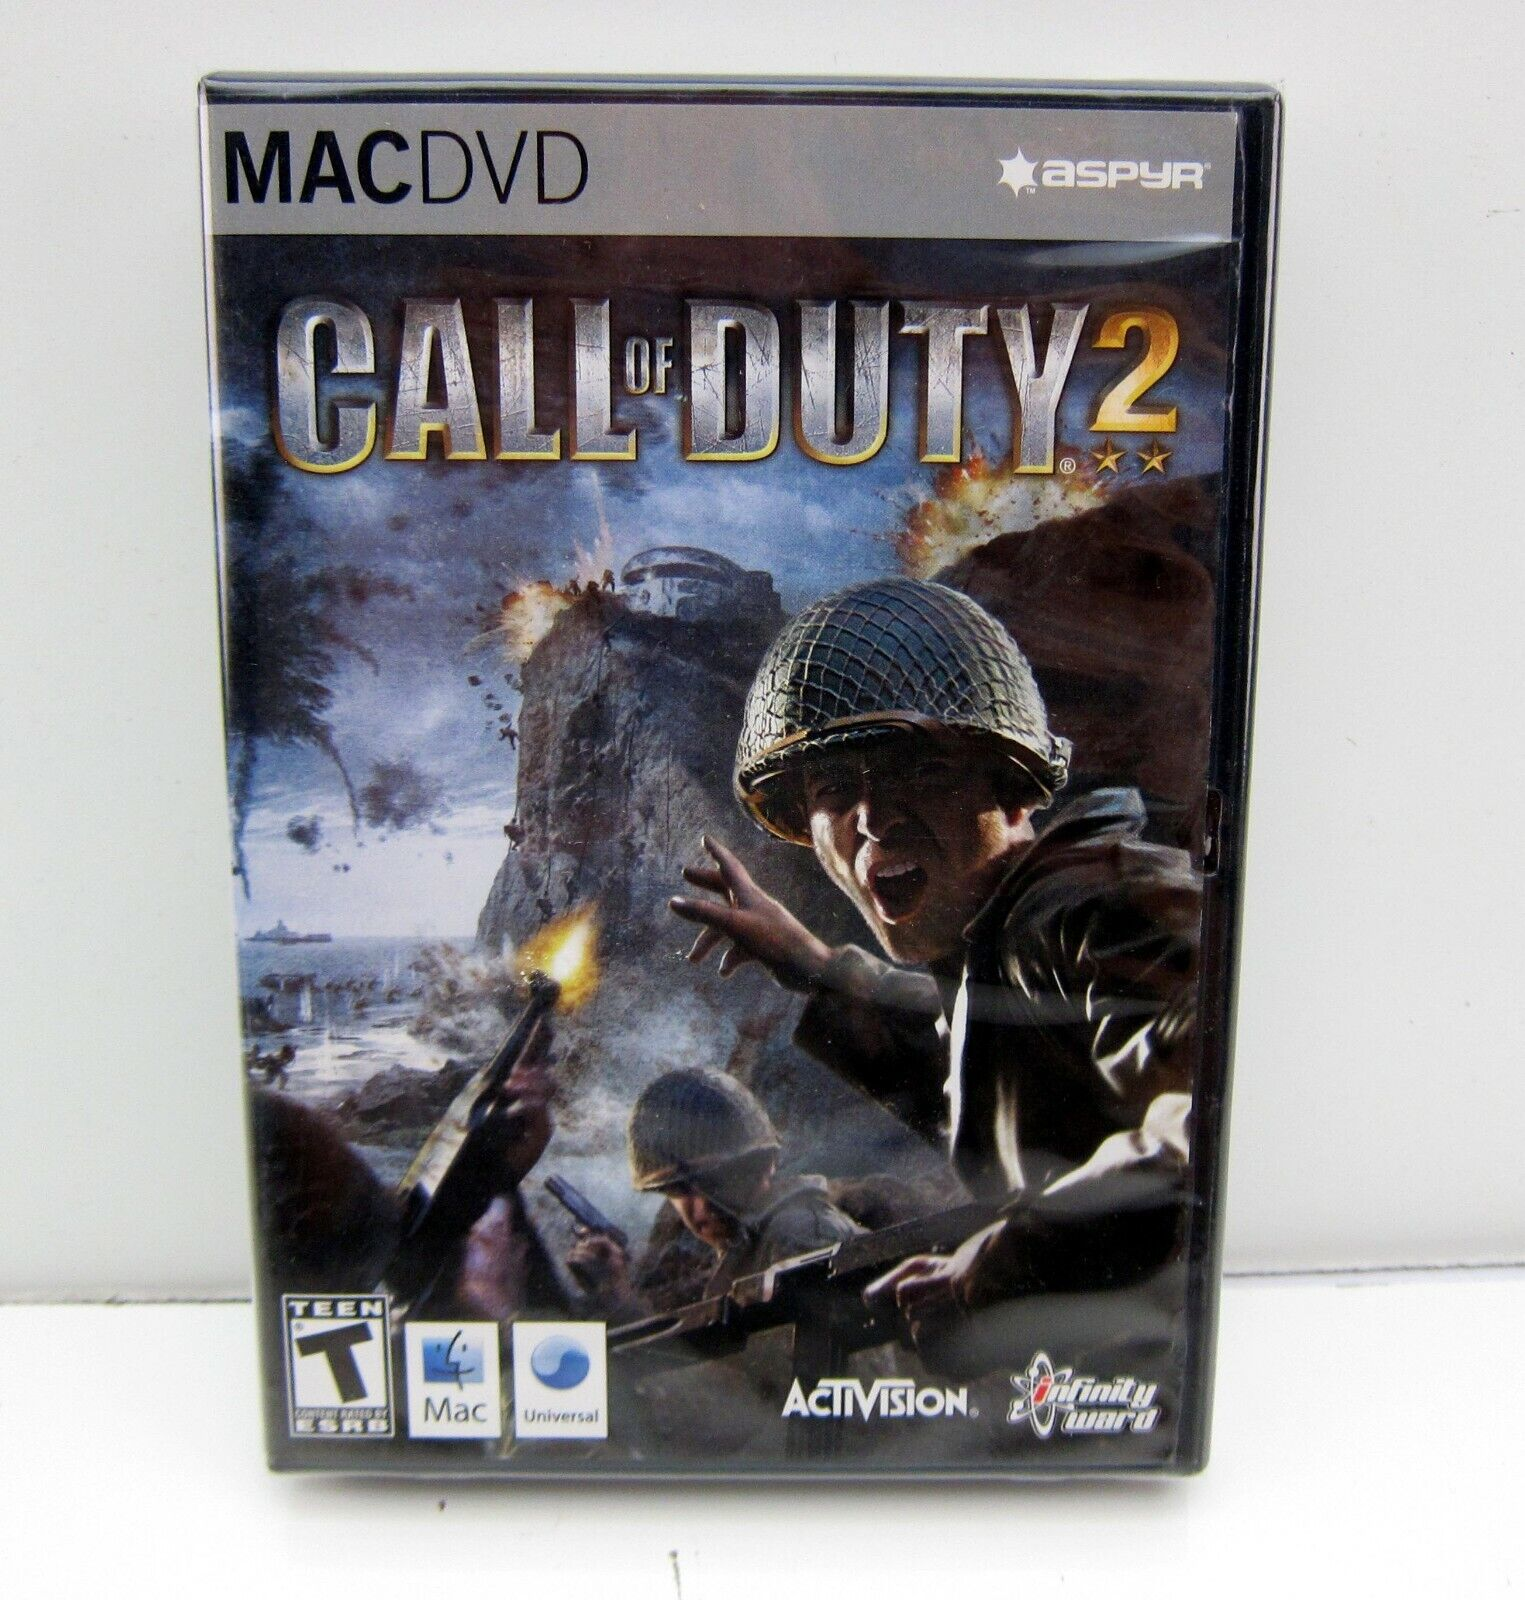 Computer Games - NEW CALL OF DUTY 2 Video Game Computer Apple Mac DVD-ROM Sealed Activision